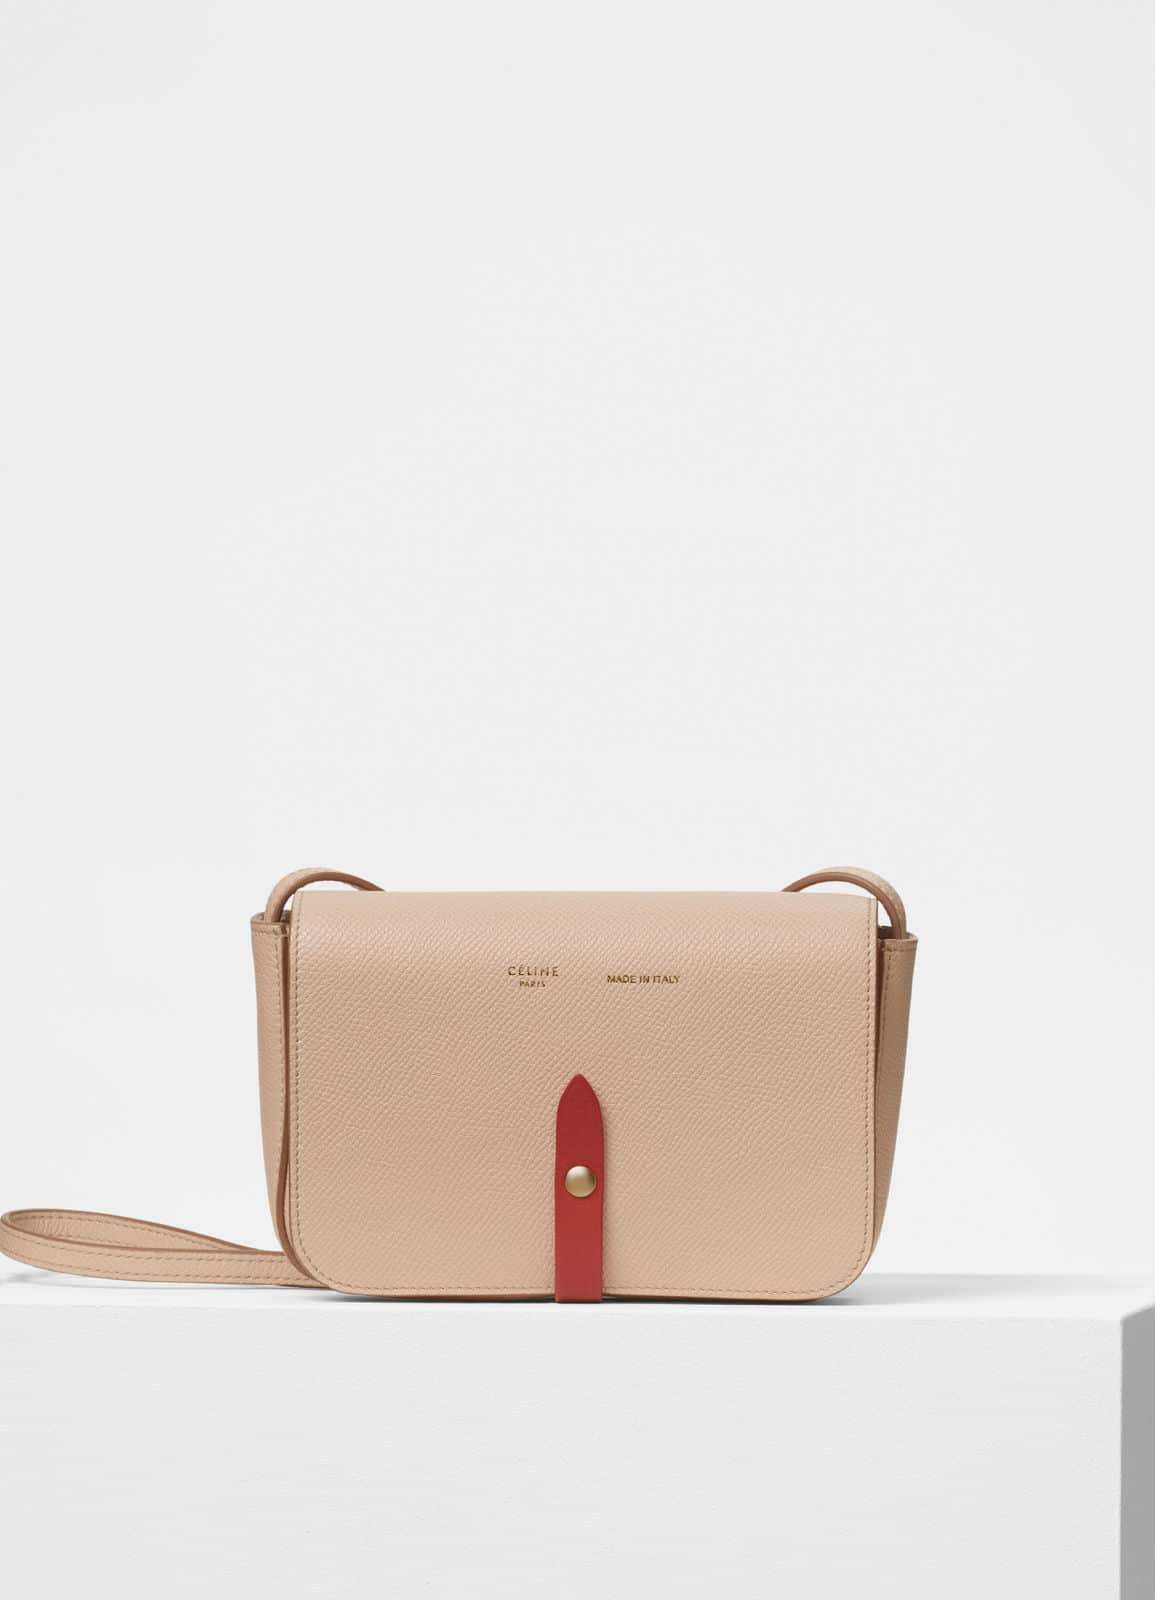 Europe Celine Bag Price List Reference Guide  51ca7543031a5